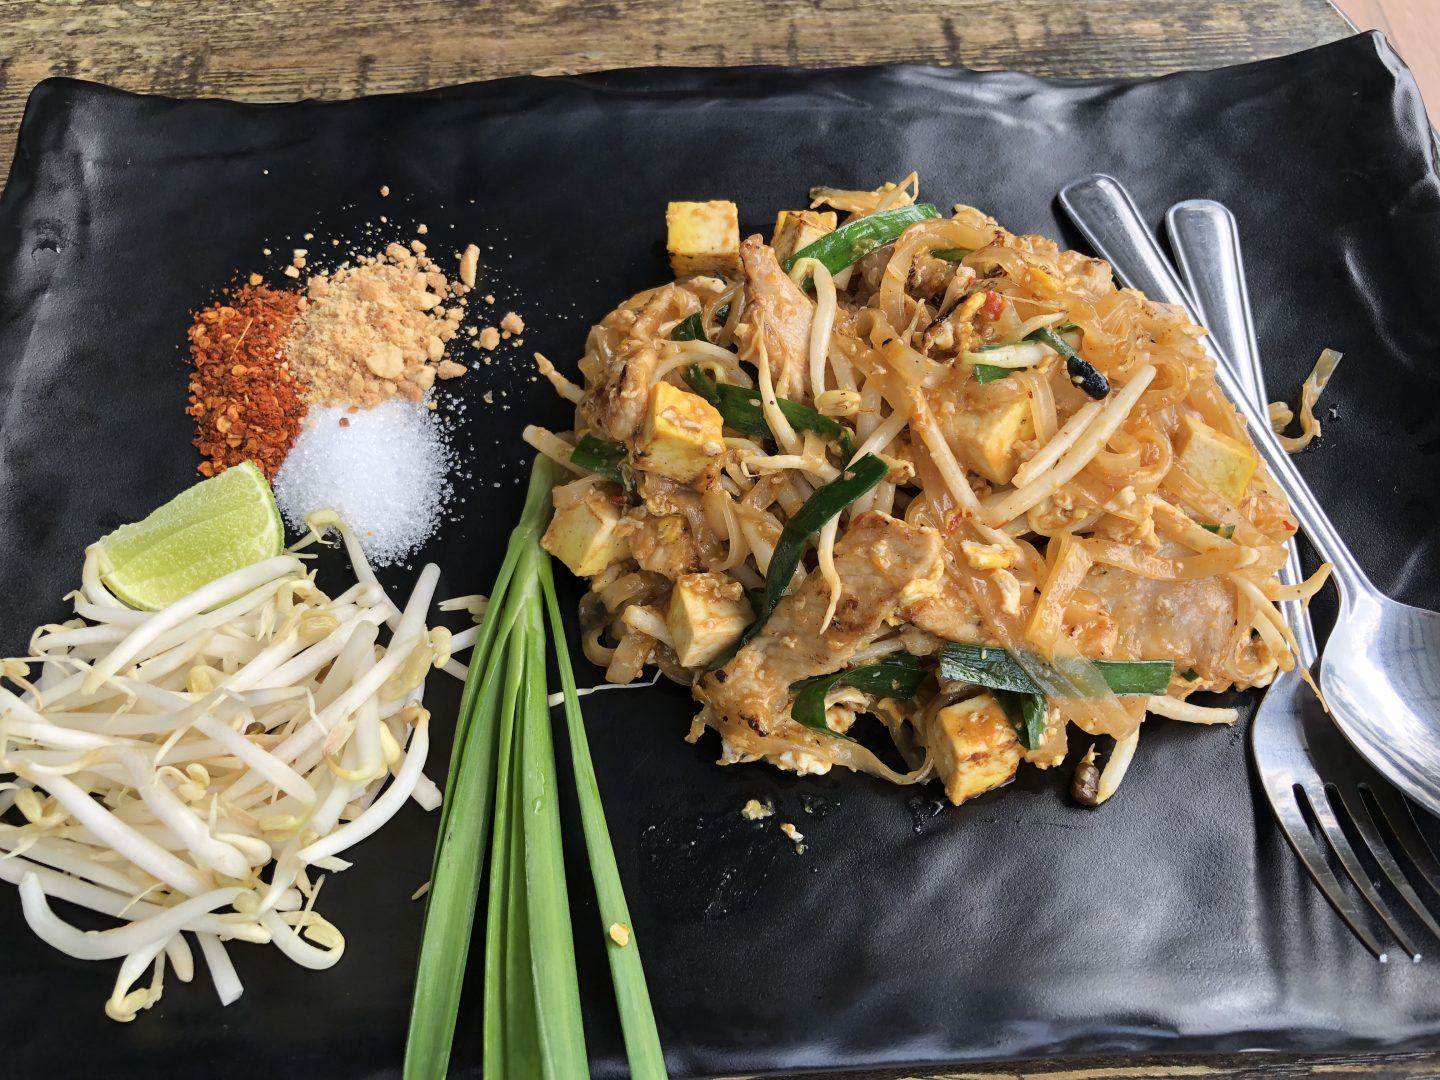 Golden Foyer Hotel - Suvarnabhumi Airport Bangkok - Pad Thai Pork